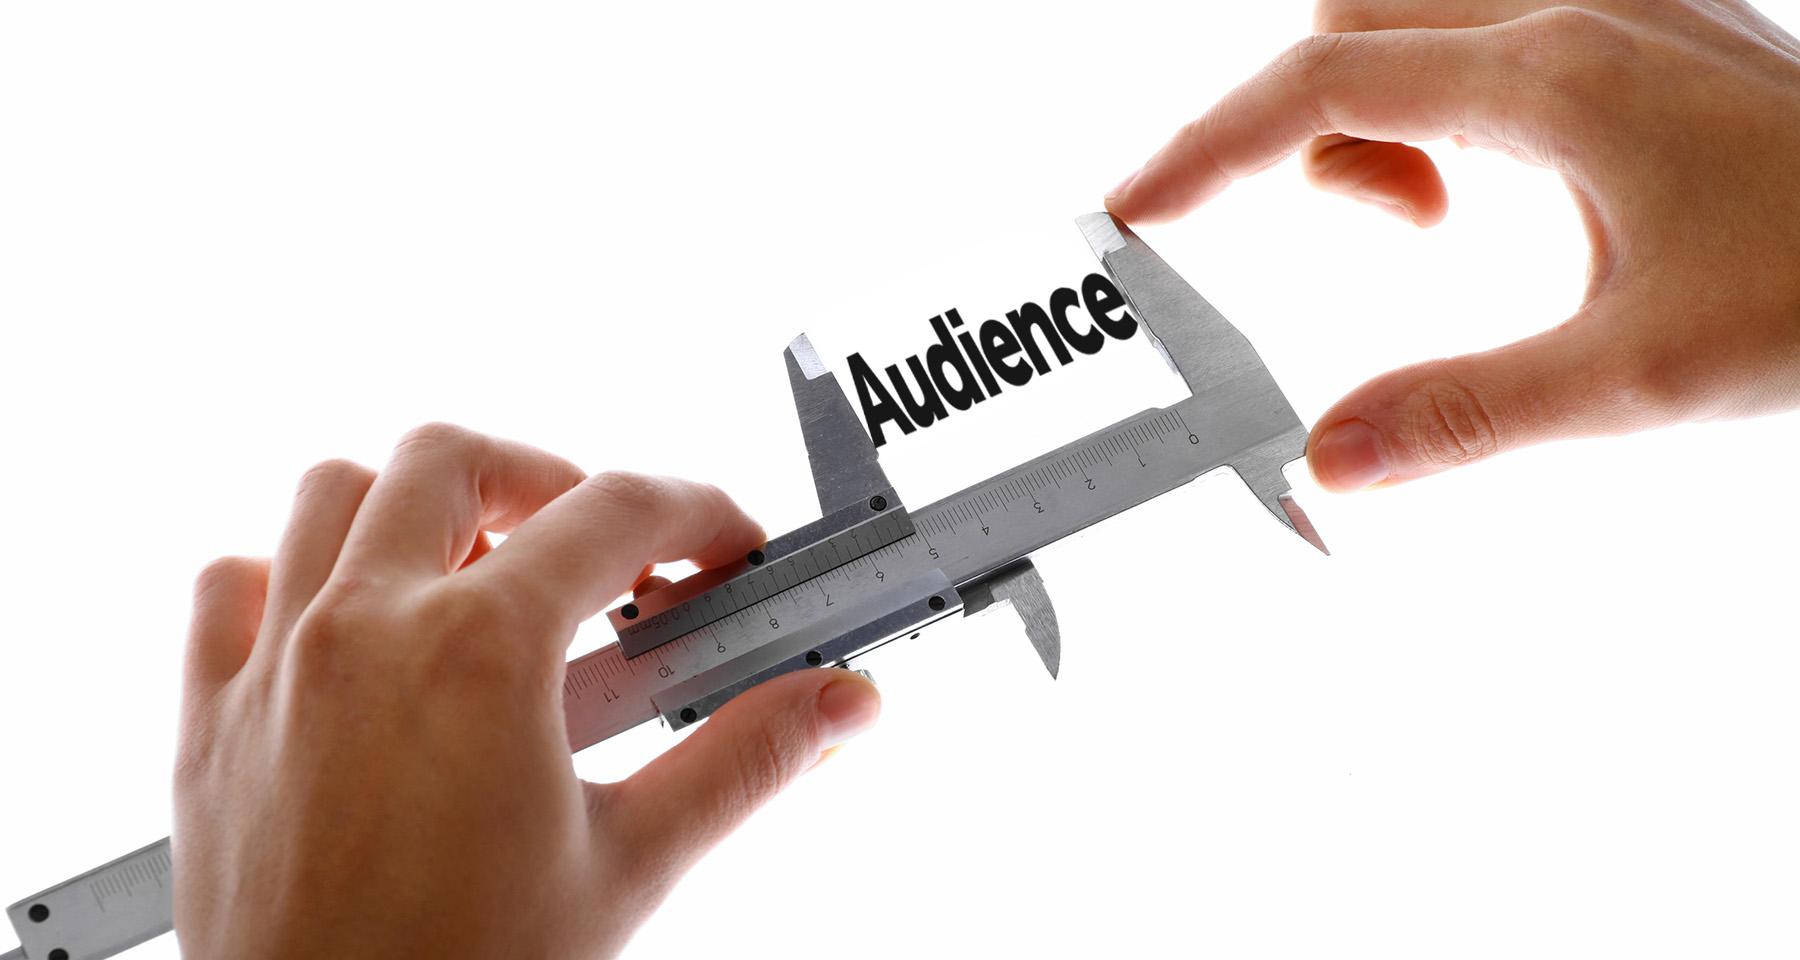 It's time to reinvent news media audience measurement